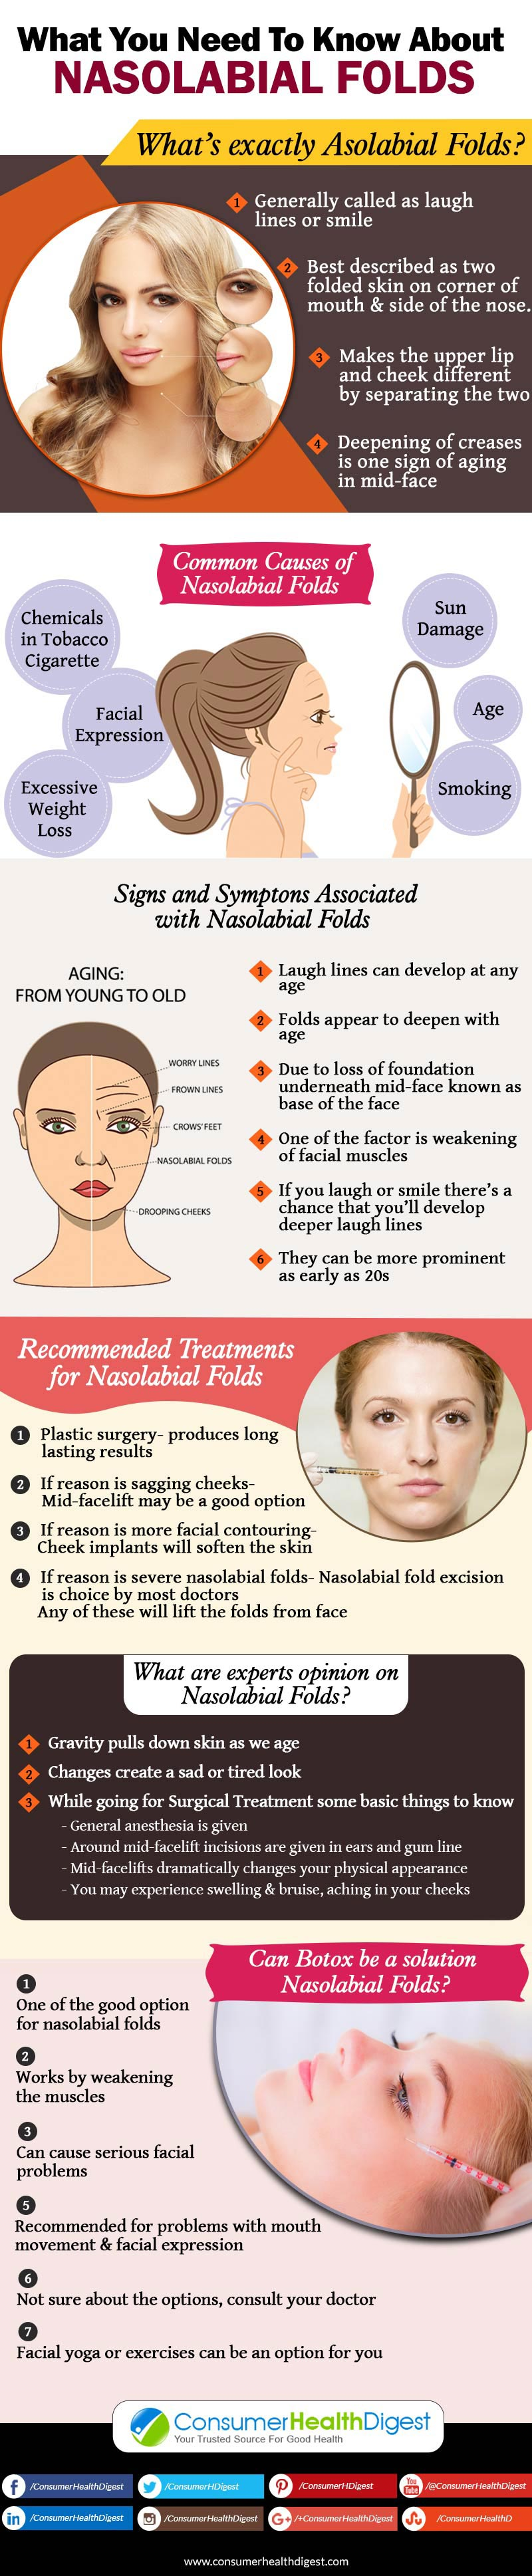 Nasolabial Folds Info